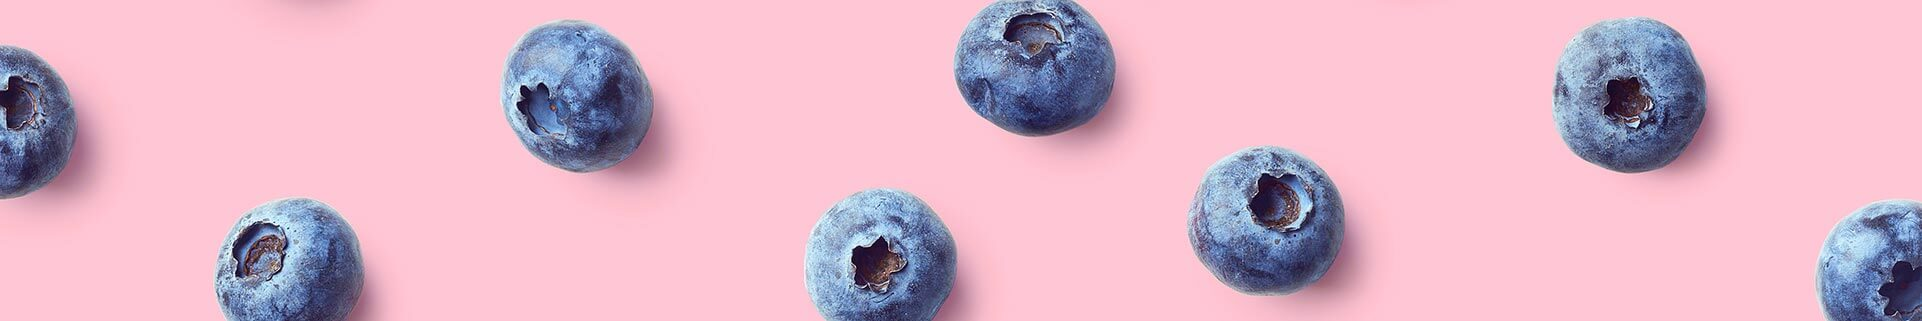 Blueberries on pink background